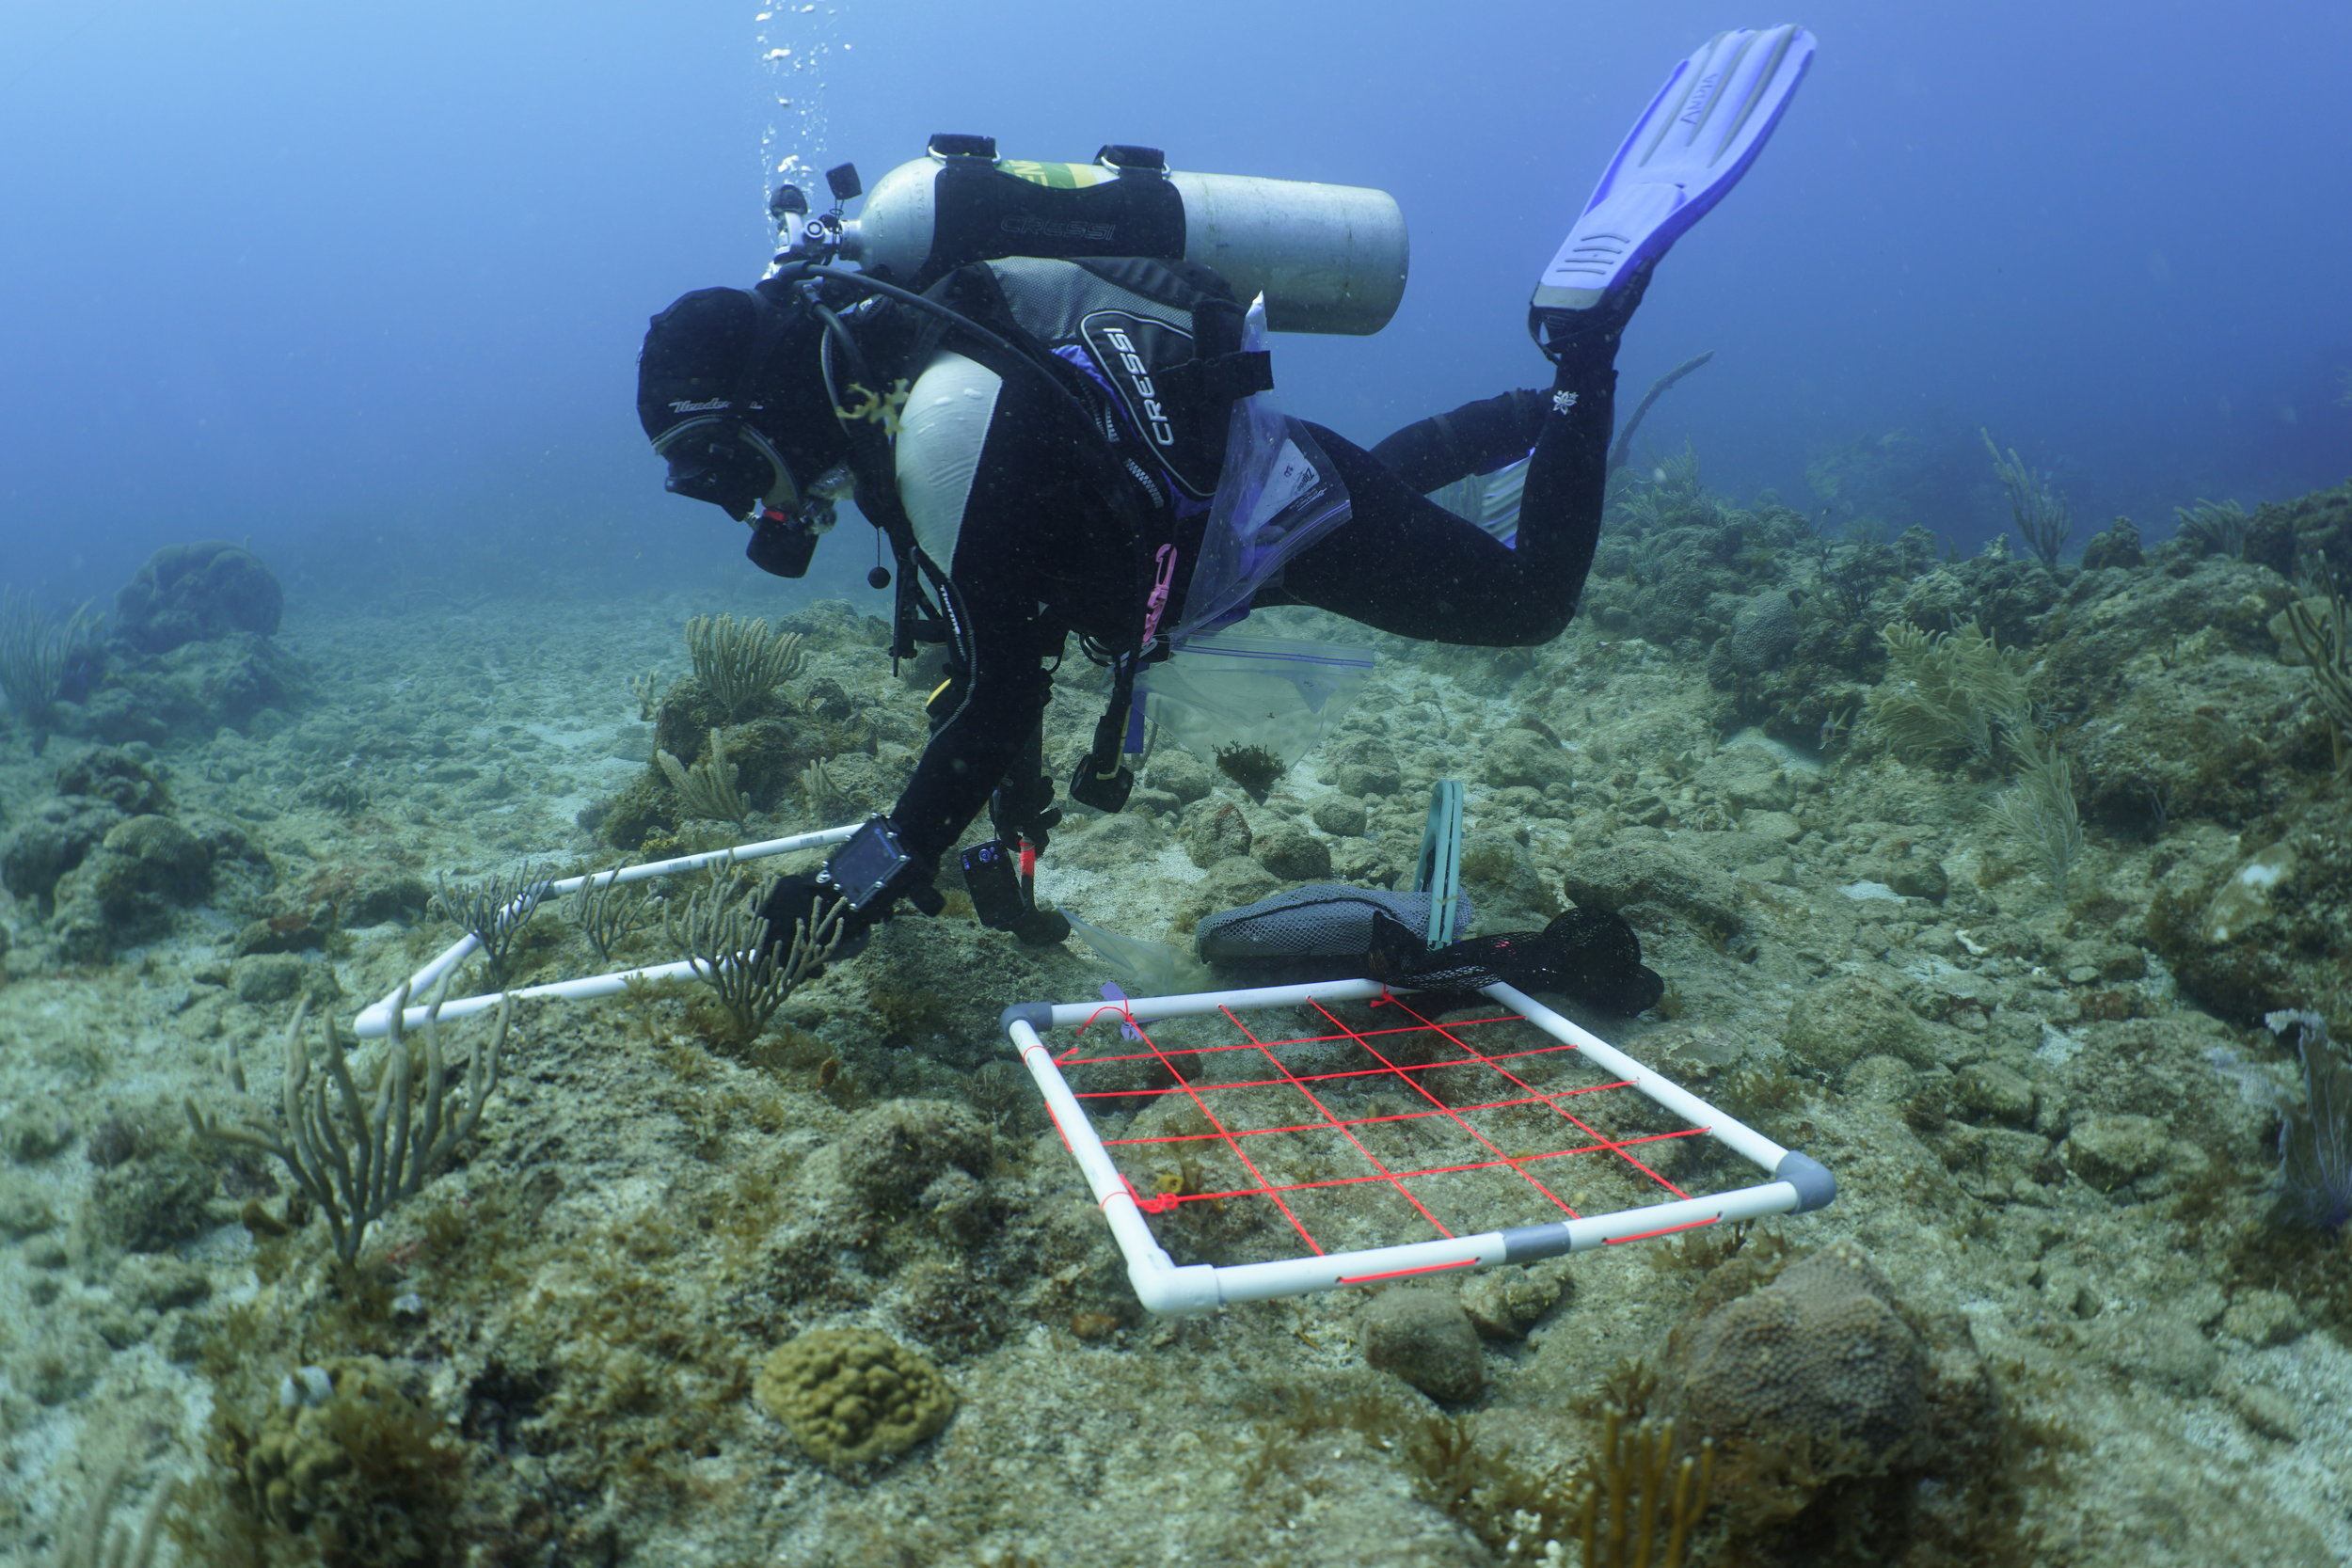 Dr. Andia Chaves-Fonnegra, a Post-doctoral Associate at the University of the Virgin Islands, sets up an experiment to determine how coral reefs in the Virgin Islands are responding to the passage of the hurricanes.